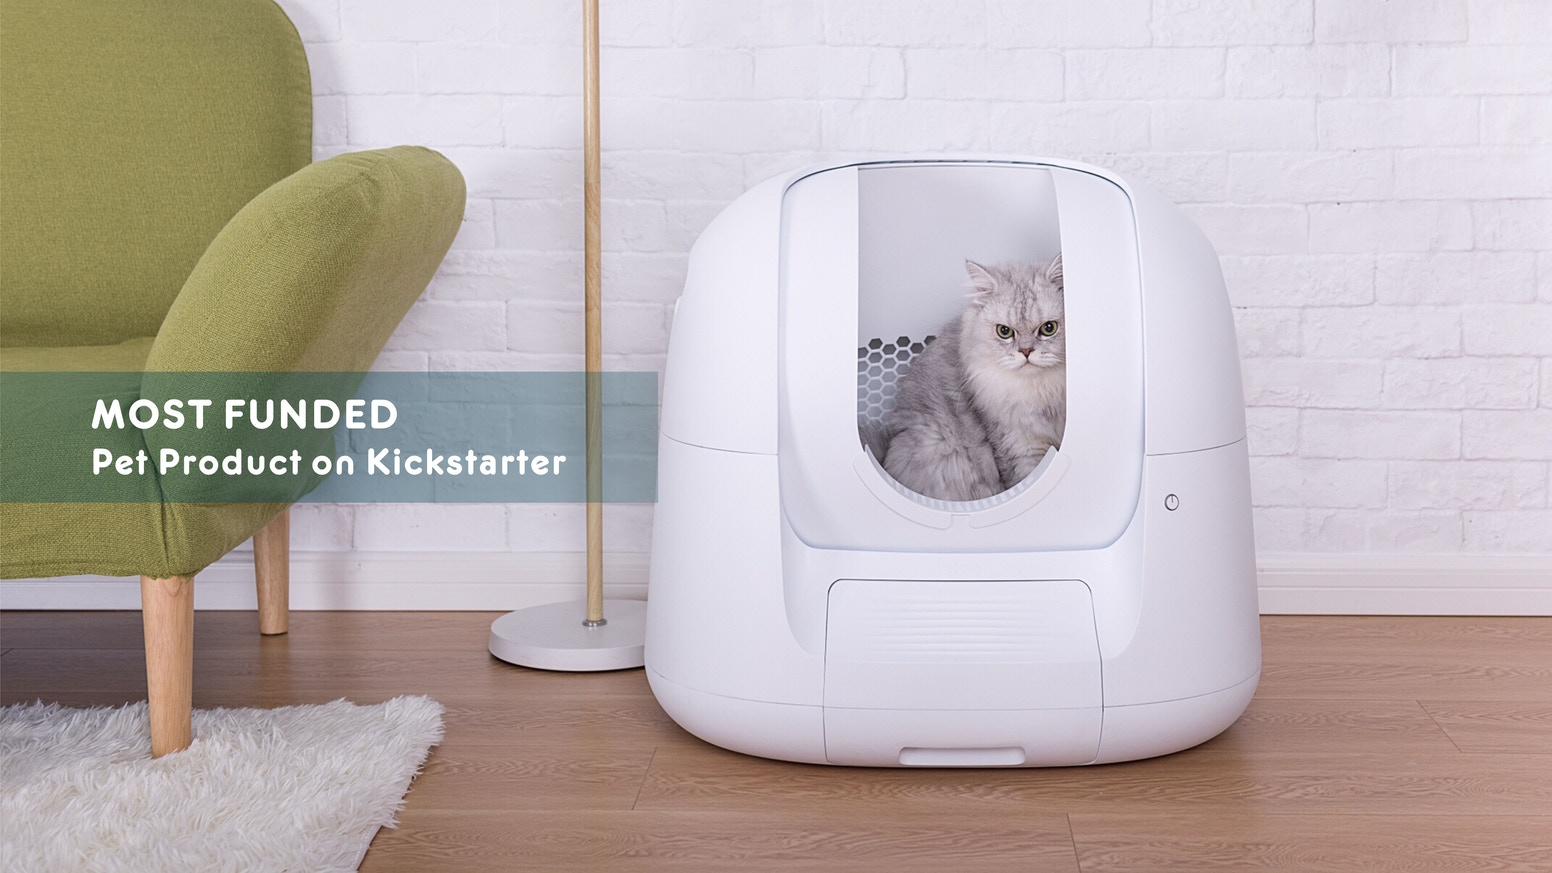 Robust Self-Cleaning Litter Box ▪ Health Data ▪ A.I. Powered ▪ Cat-Centric Design ▪ Elegant & Ergonomic ▪ Smart Alerts ▪ Deodorizing